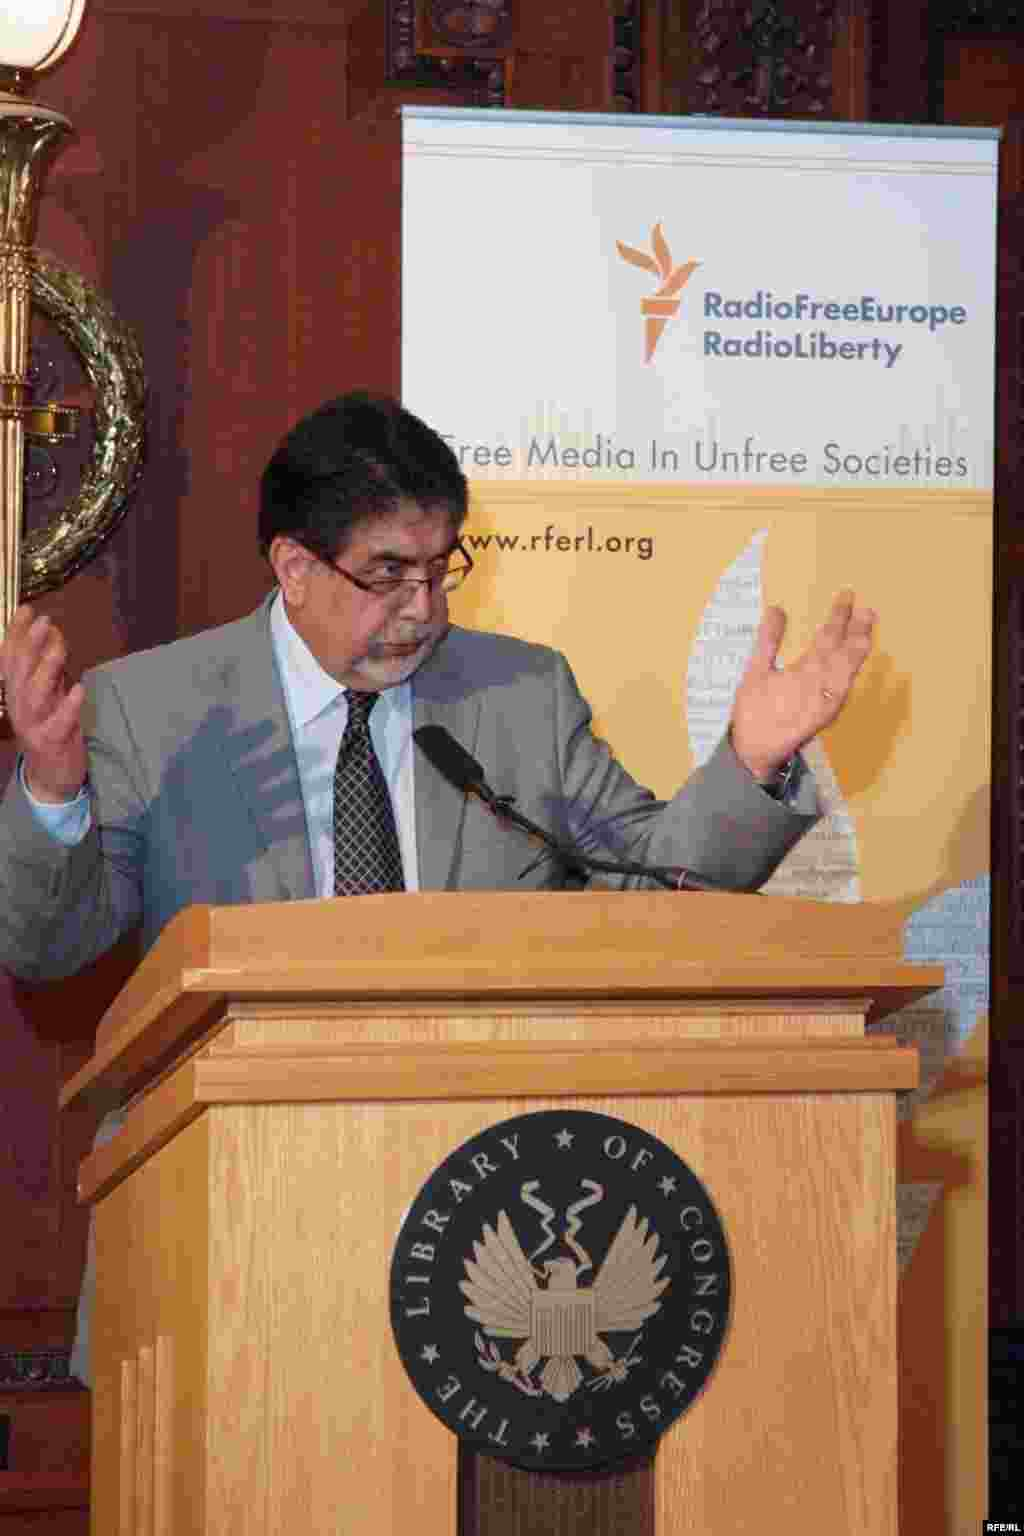 RFE/RL Associate Director of Broadcasting Akbar Ayazi speaks at the reception marking the opening of the exhibit - (Photo by P. Alunans)